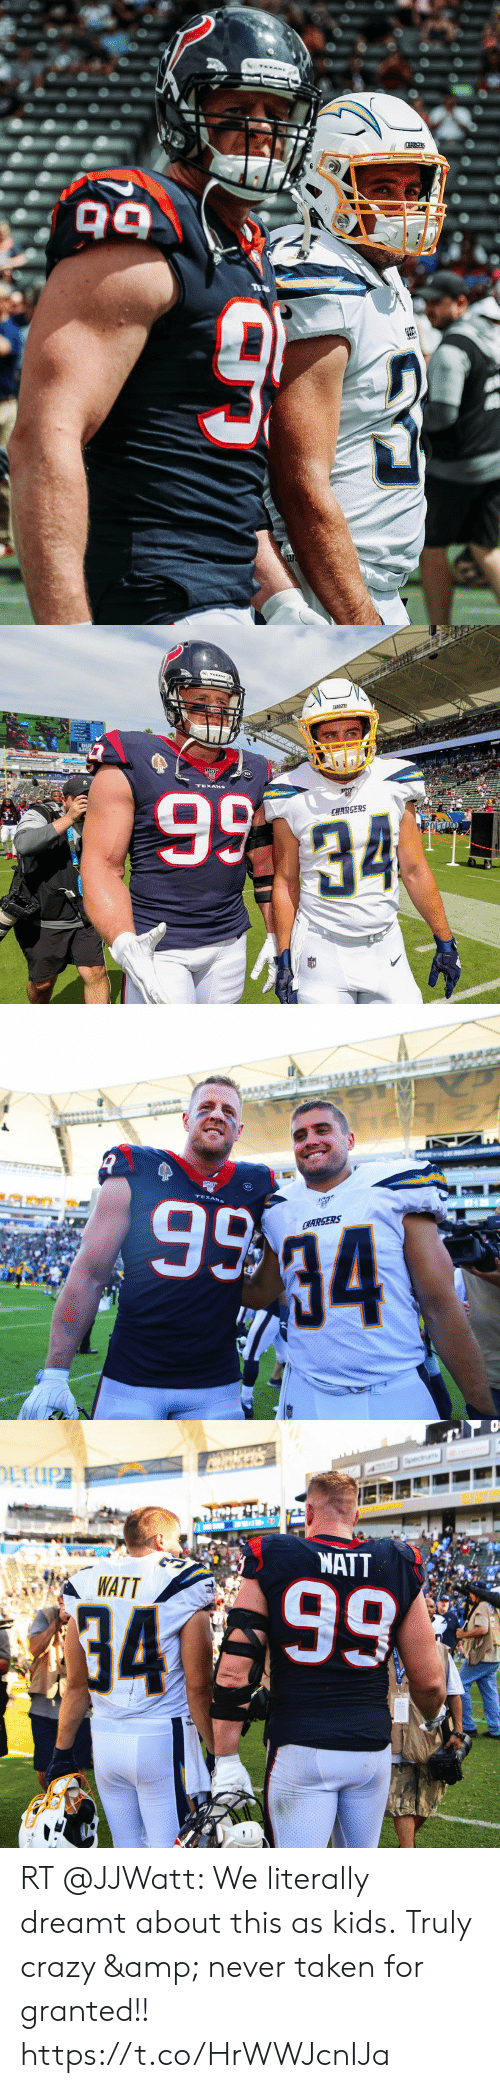 taken for granted: veANS  CLANCR   CHRGERS  BUE  9 34  TEXANs  CUARGERS   TEXANS  935  CHARGERS  34   EUP  Spectnm  MATT  WATT  34599 RT @JJWatt: We literally dreamt about this as kids. Truly crazy & never taken for granted!! https://t.co/HrWWJcnIJa